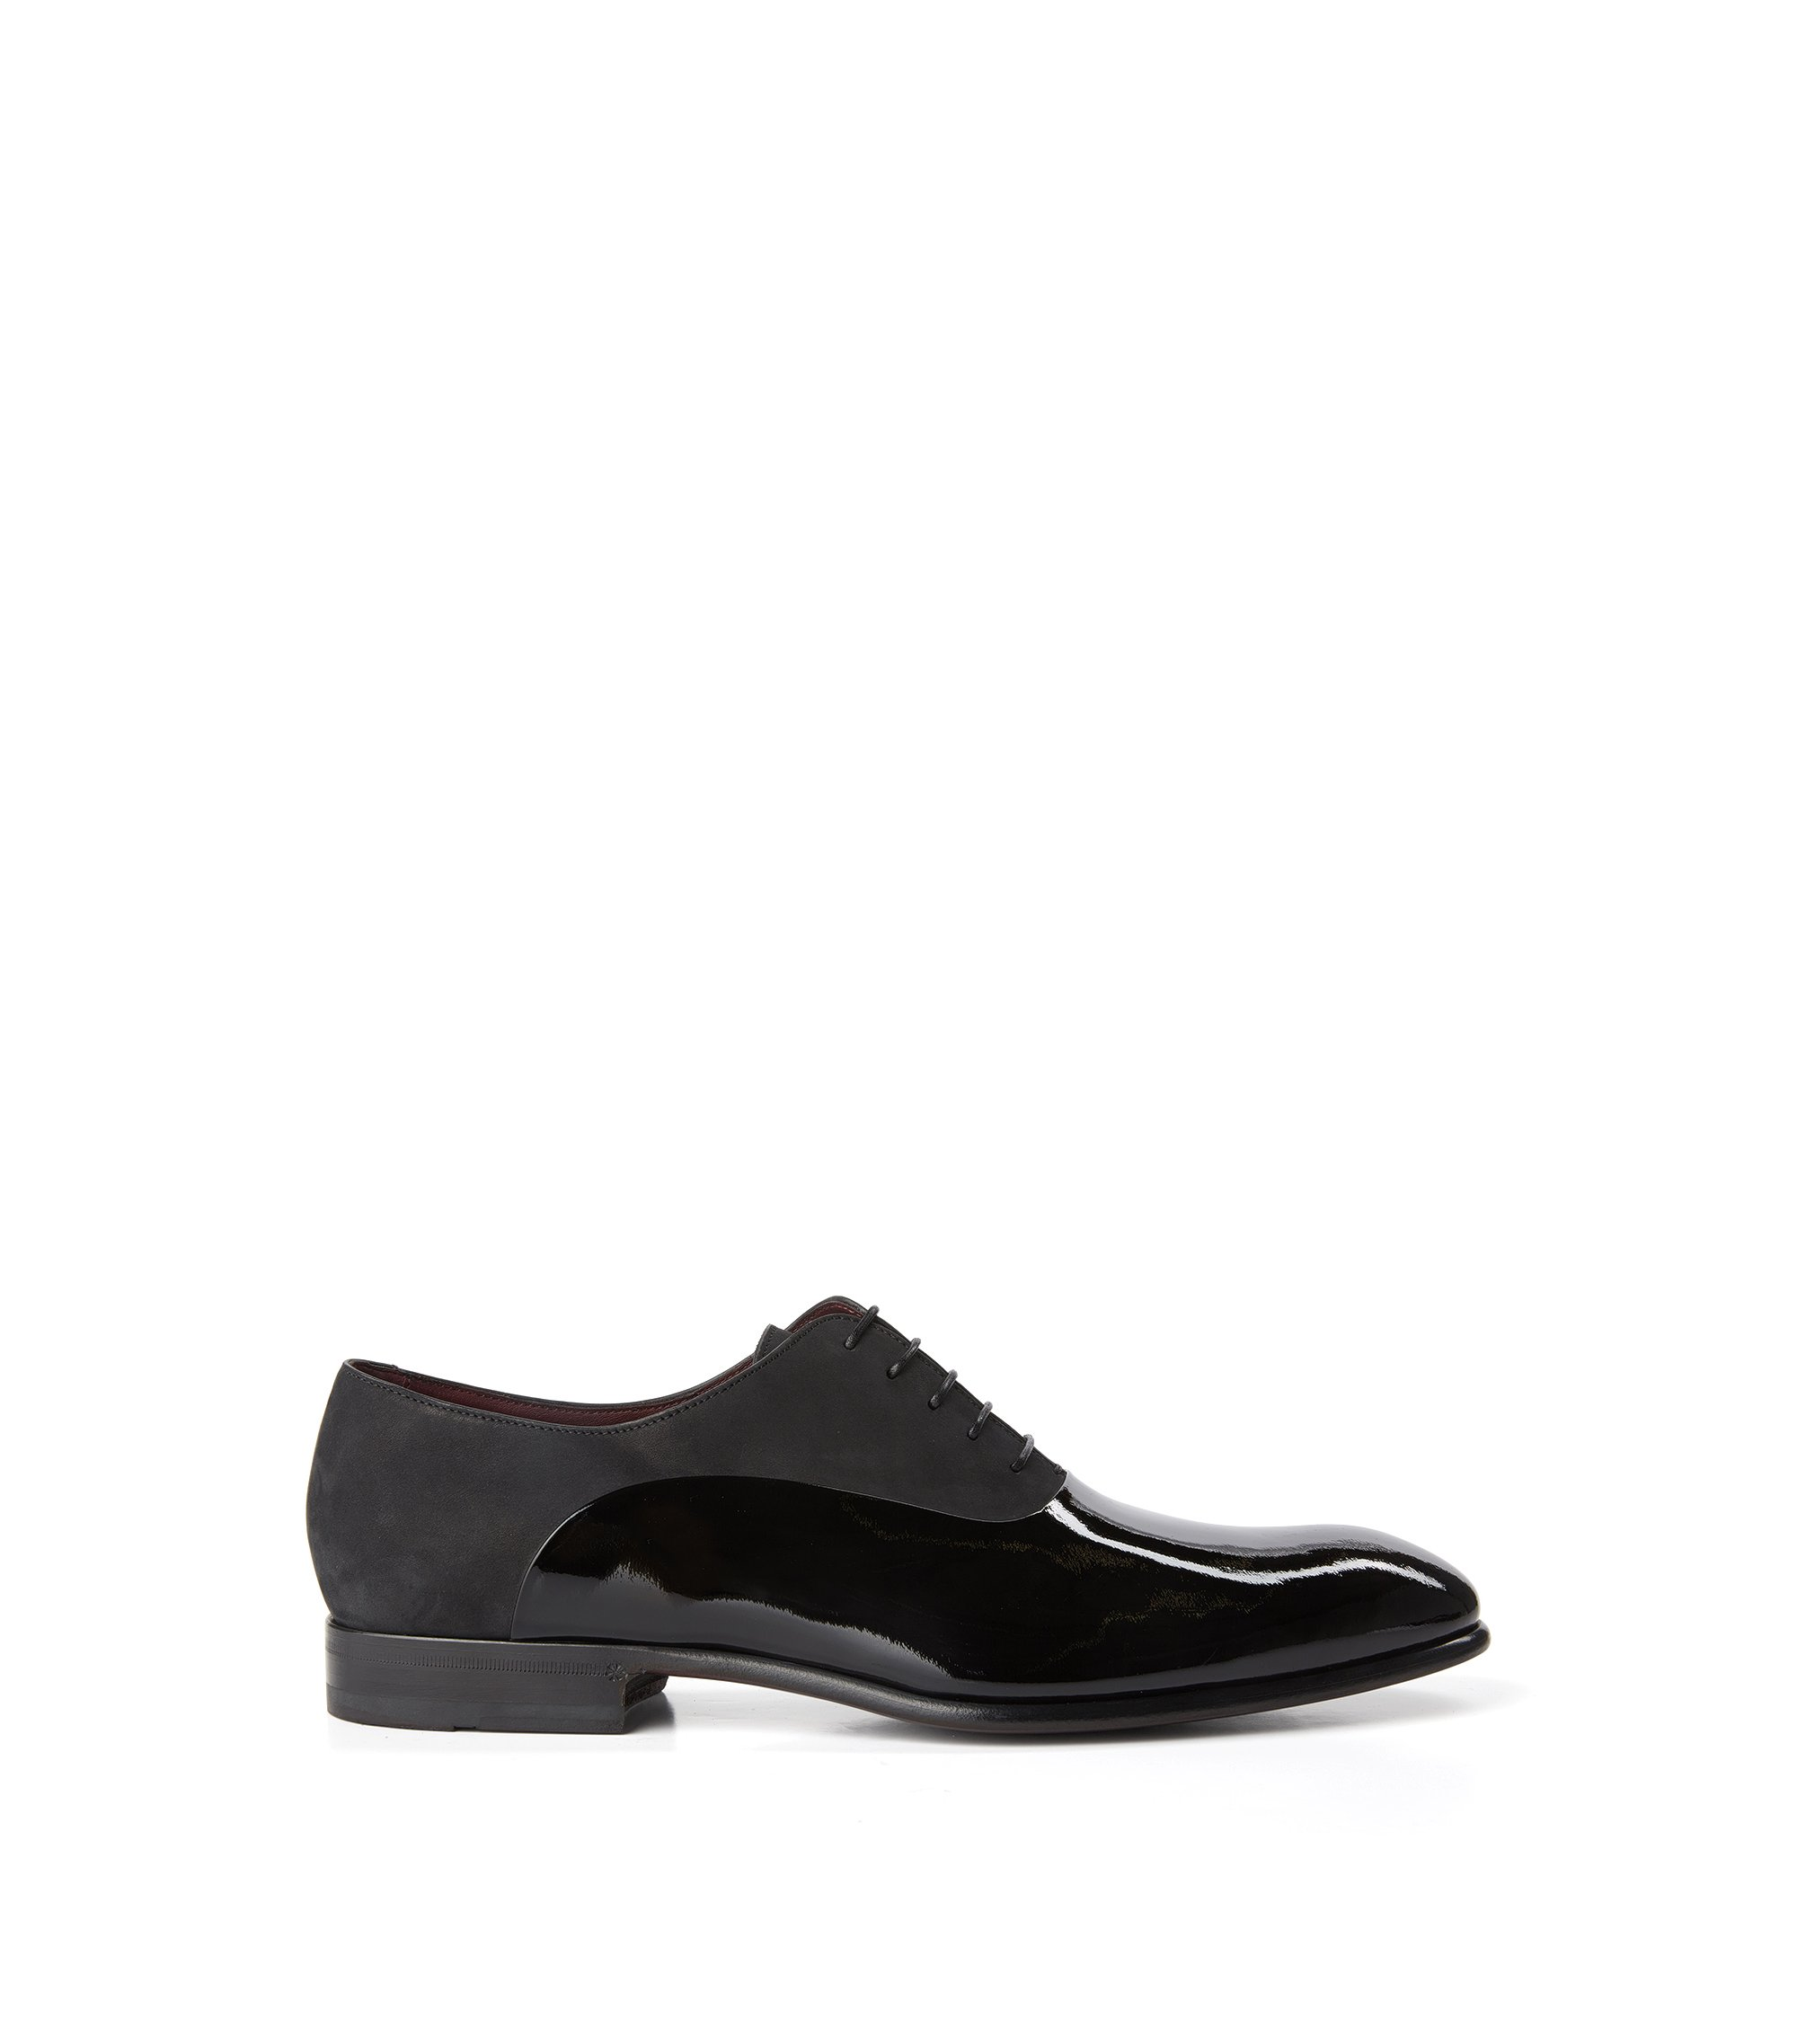 Italian Nubuck and Patent Leather Oxford Dress Shoe | T-Legend Oxfr Panu, Black